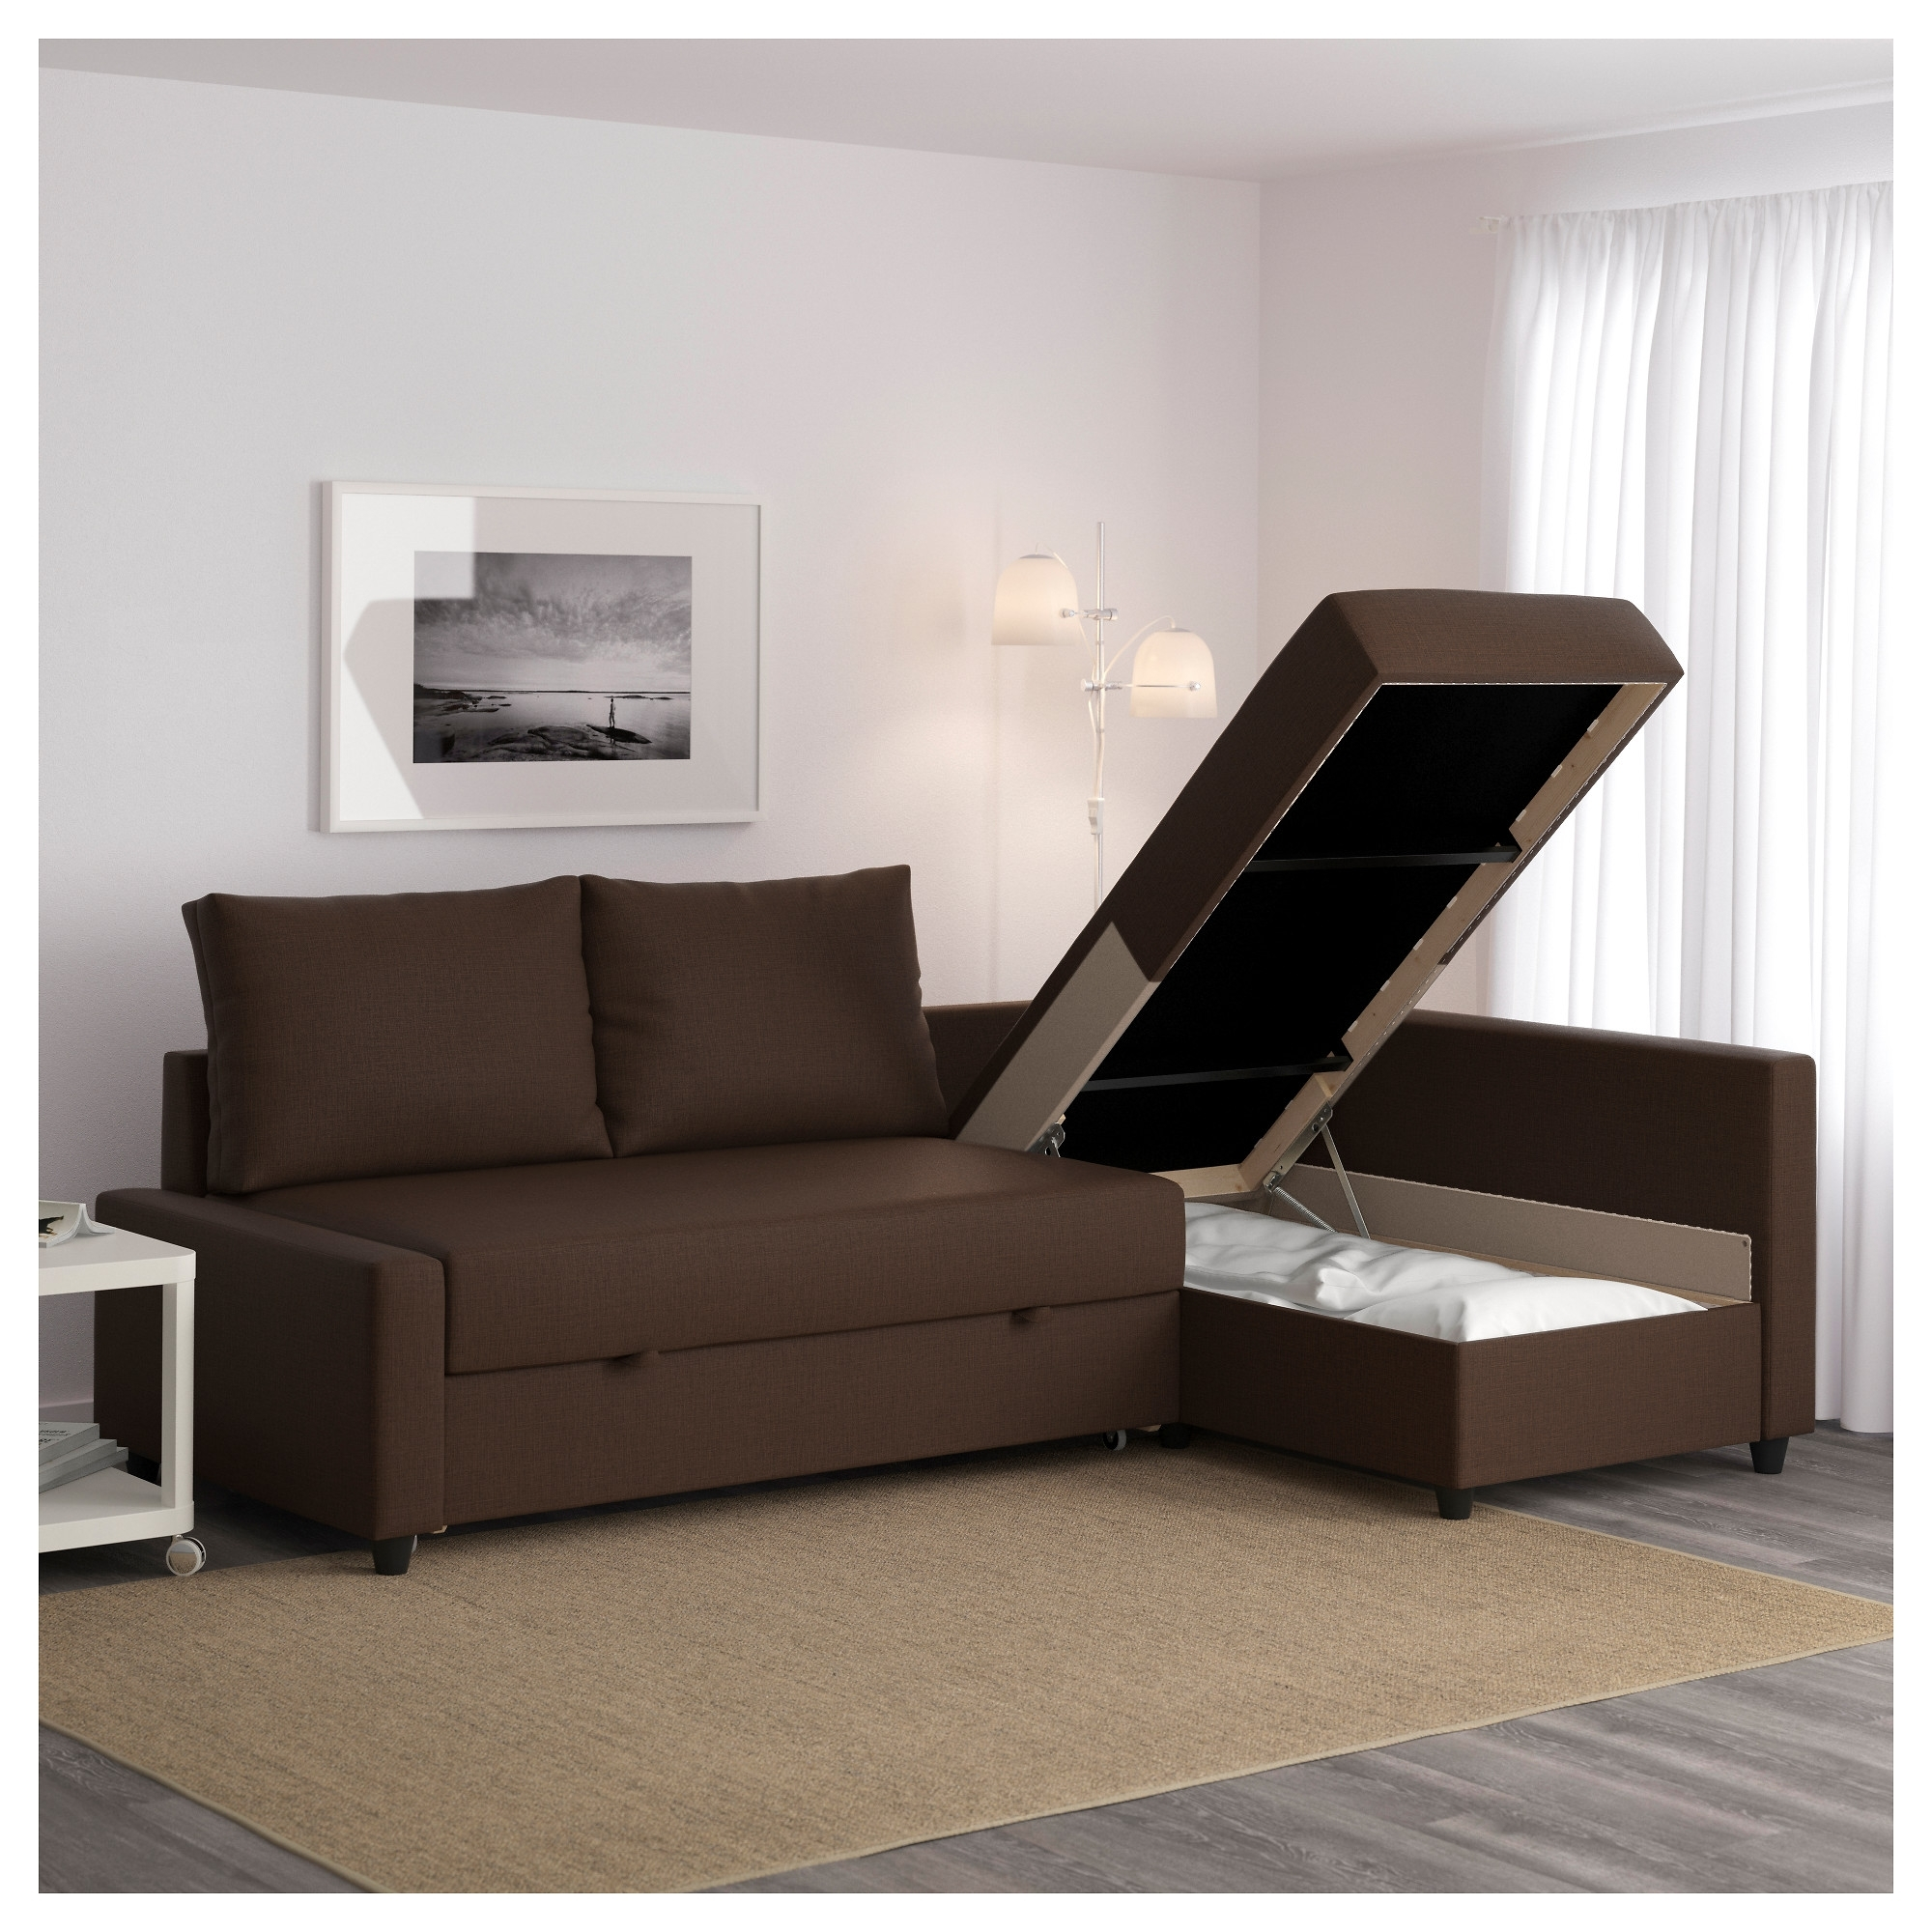 Couches With Chaise Regarding Favorite Friheten Sleeper Sectional,3 Seat W/storage – Skiftebo Dark Gray (View 4 of 15)